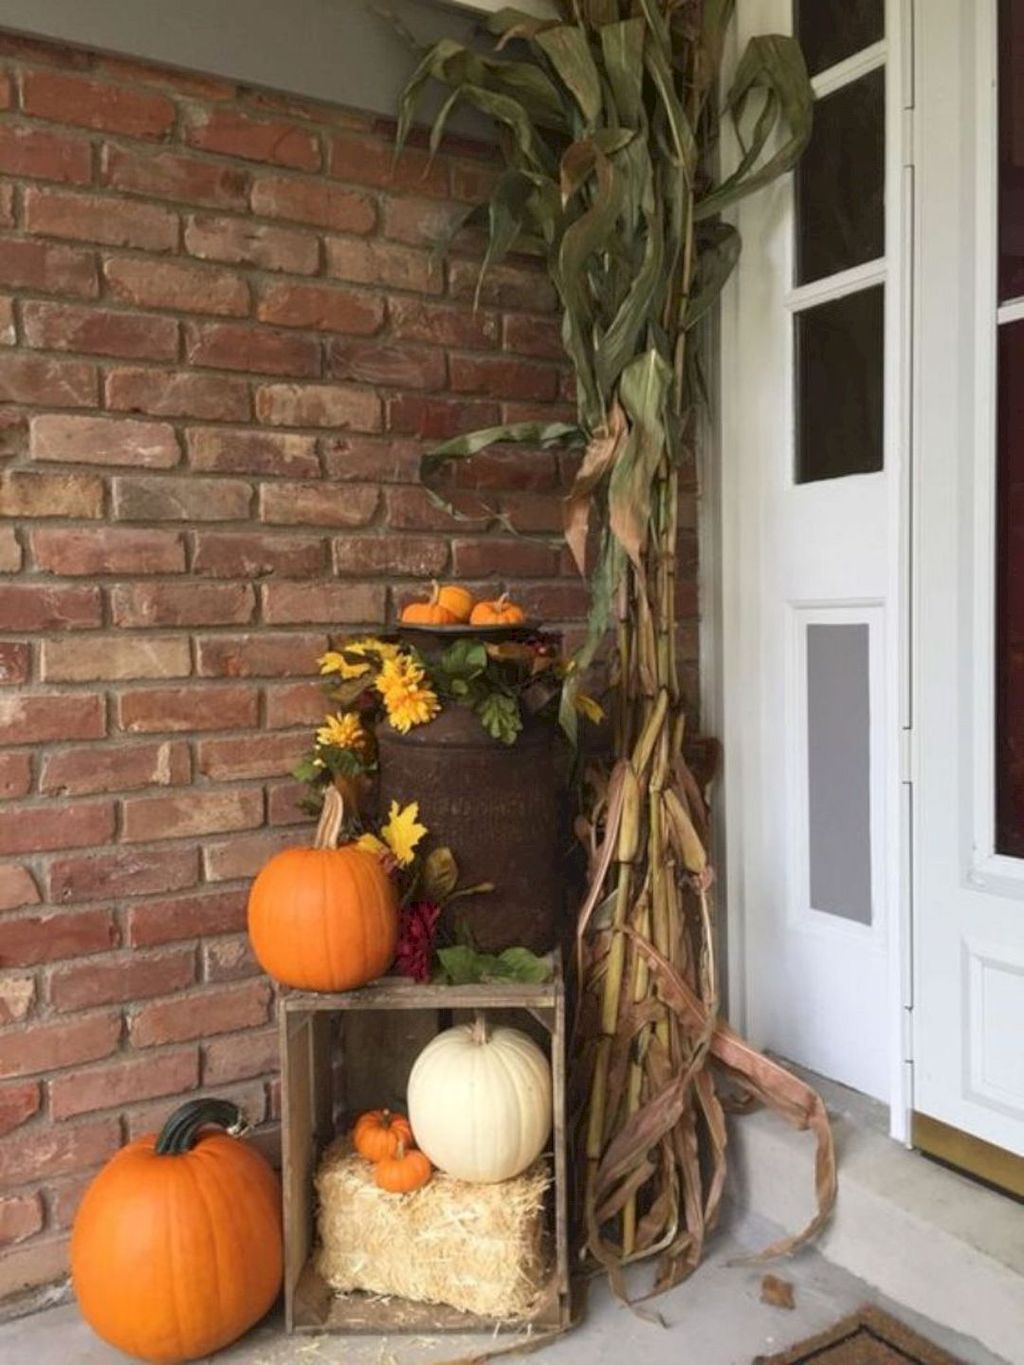 Amazing Front Porch Fall Decor Ideas That You Never Seen Before 19